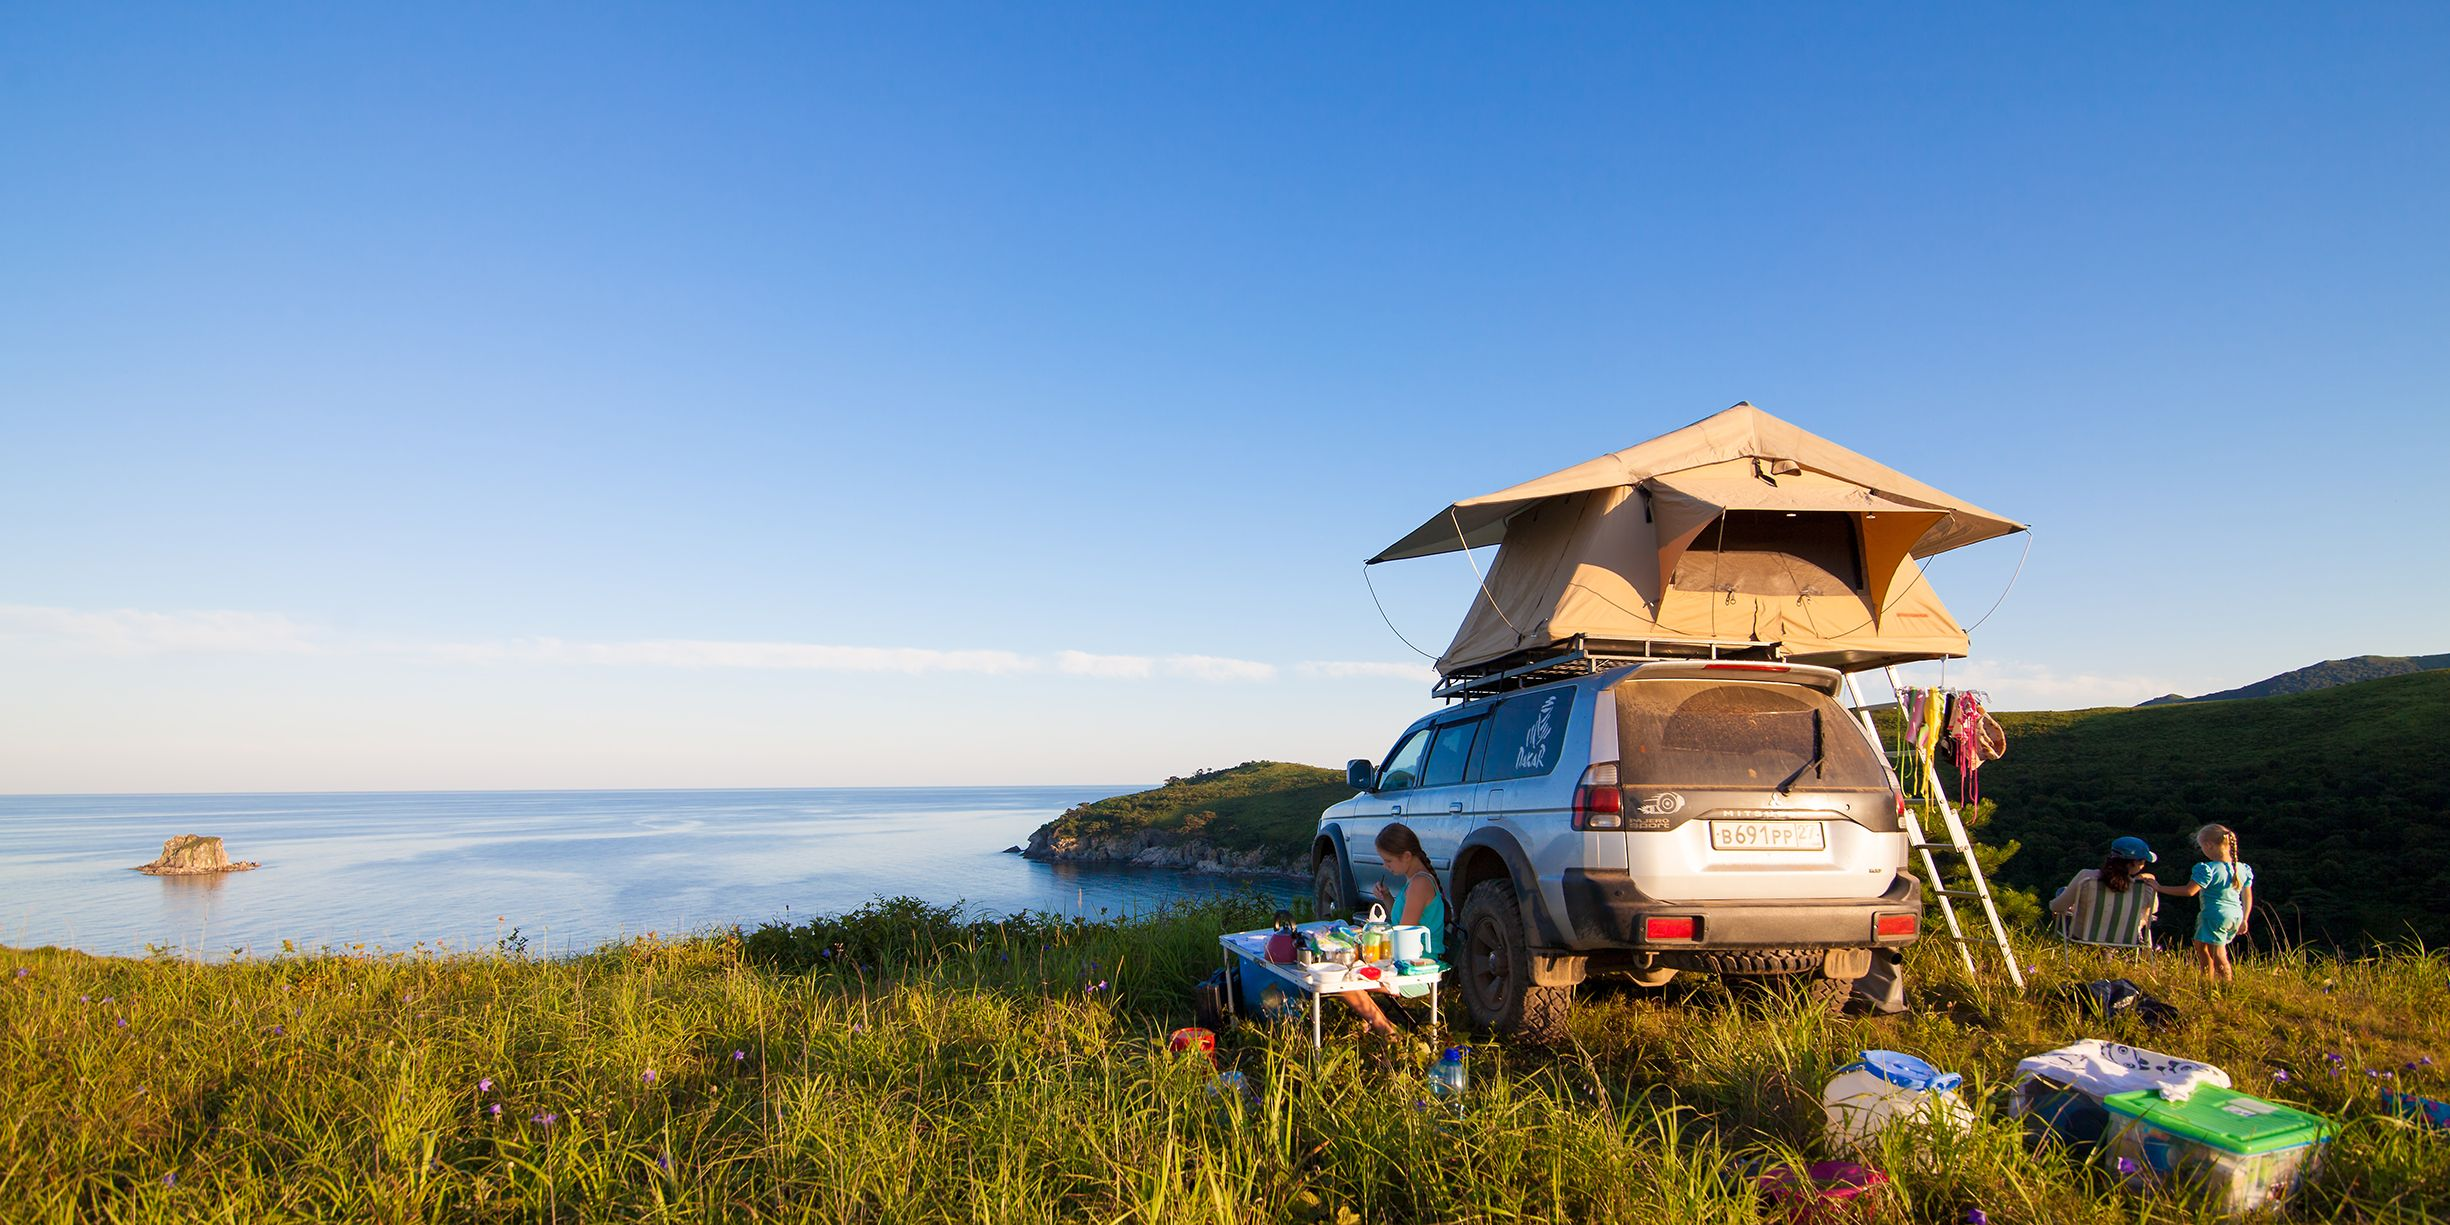 The 15 Best Tips for Camping in Your Car